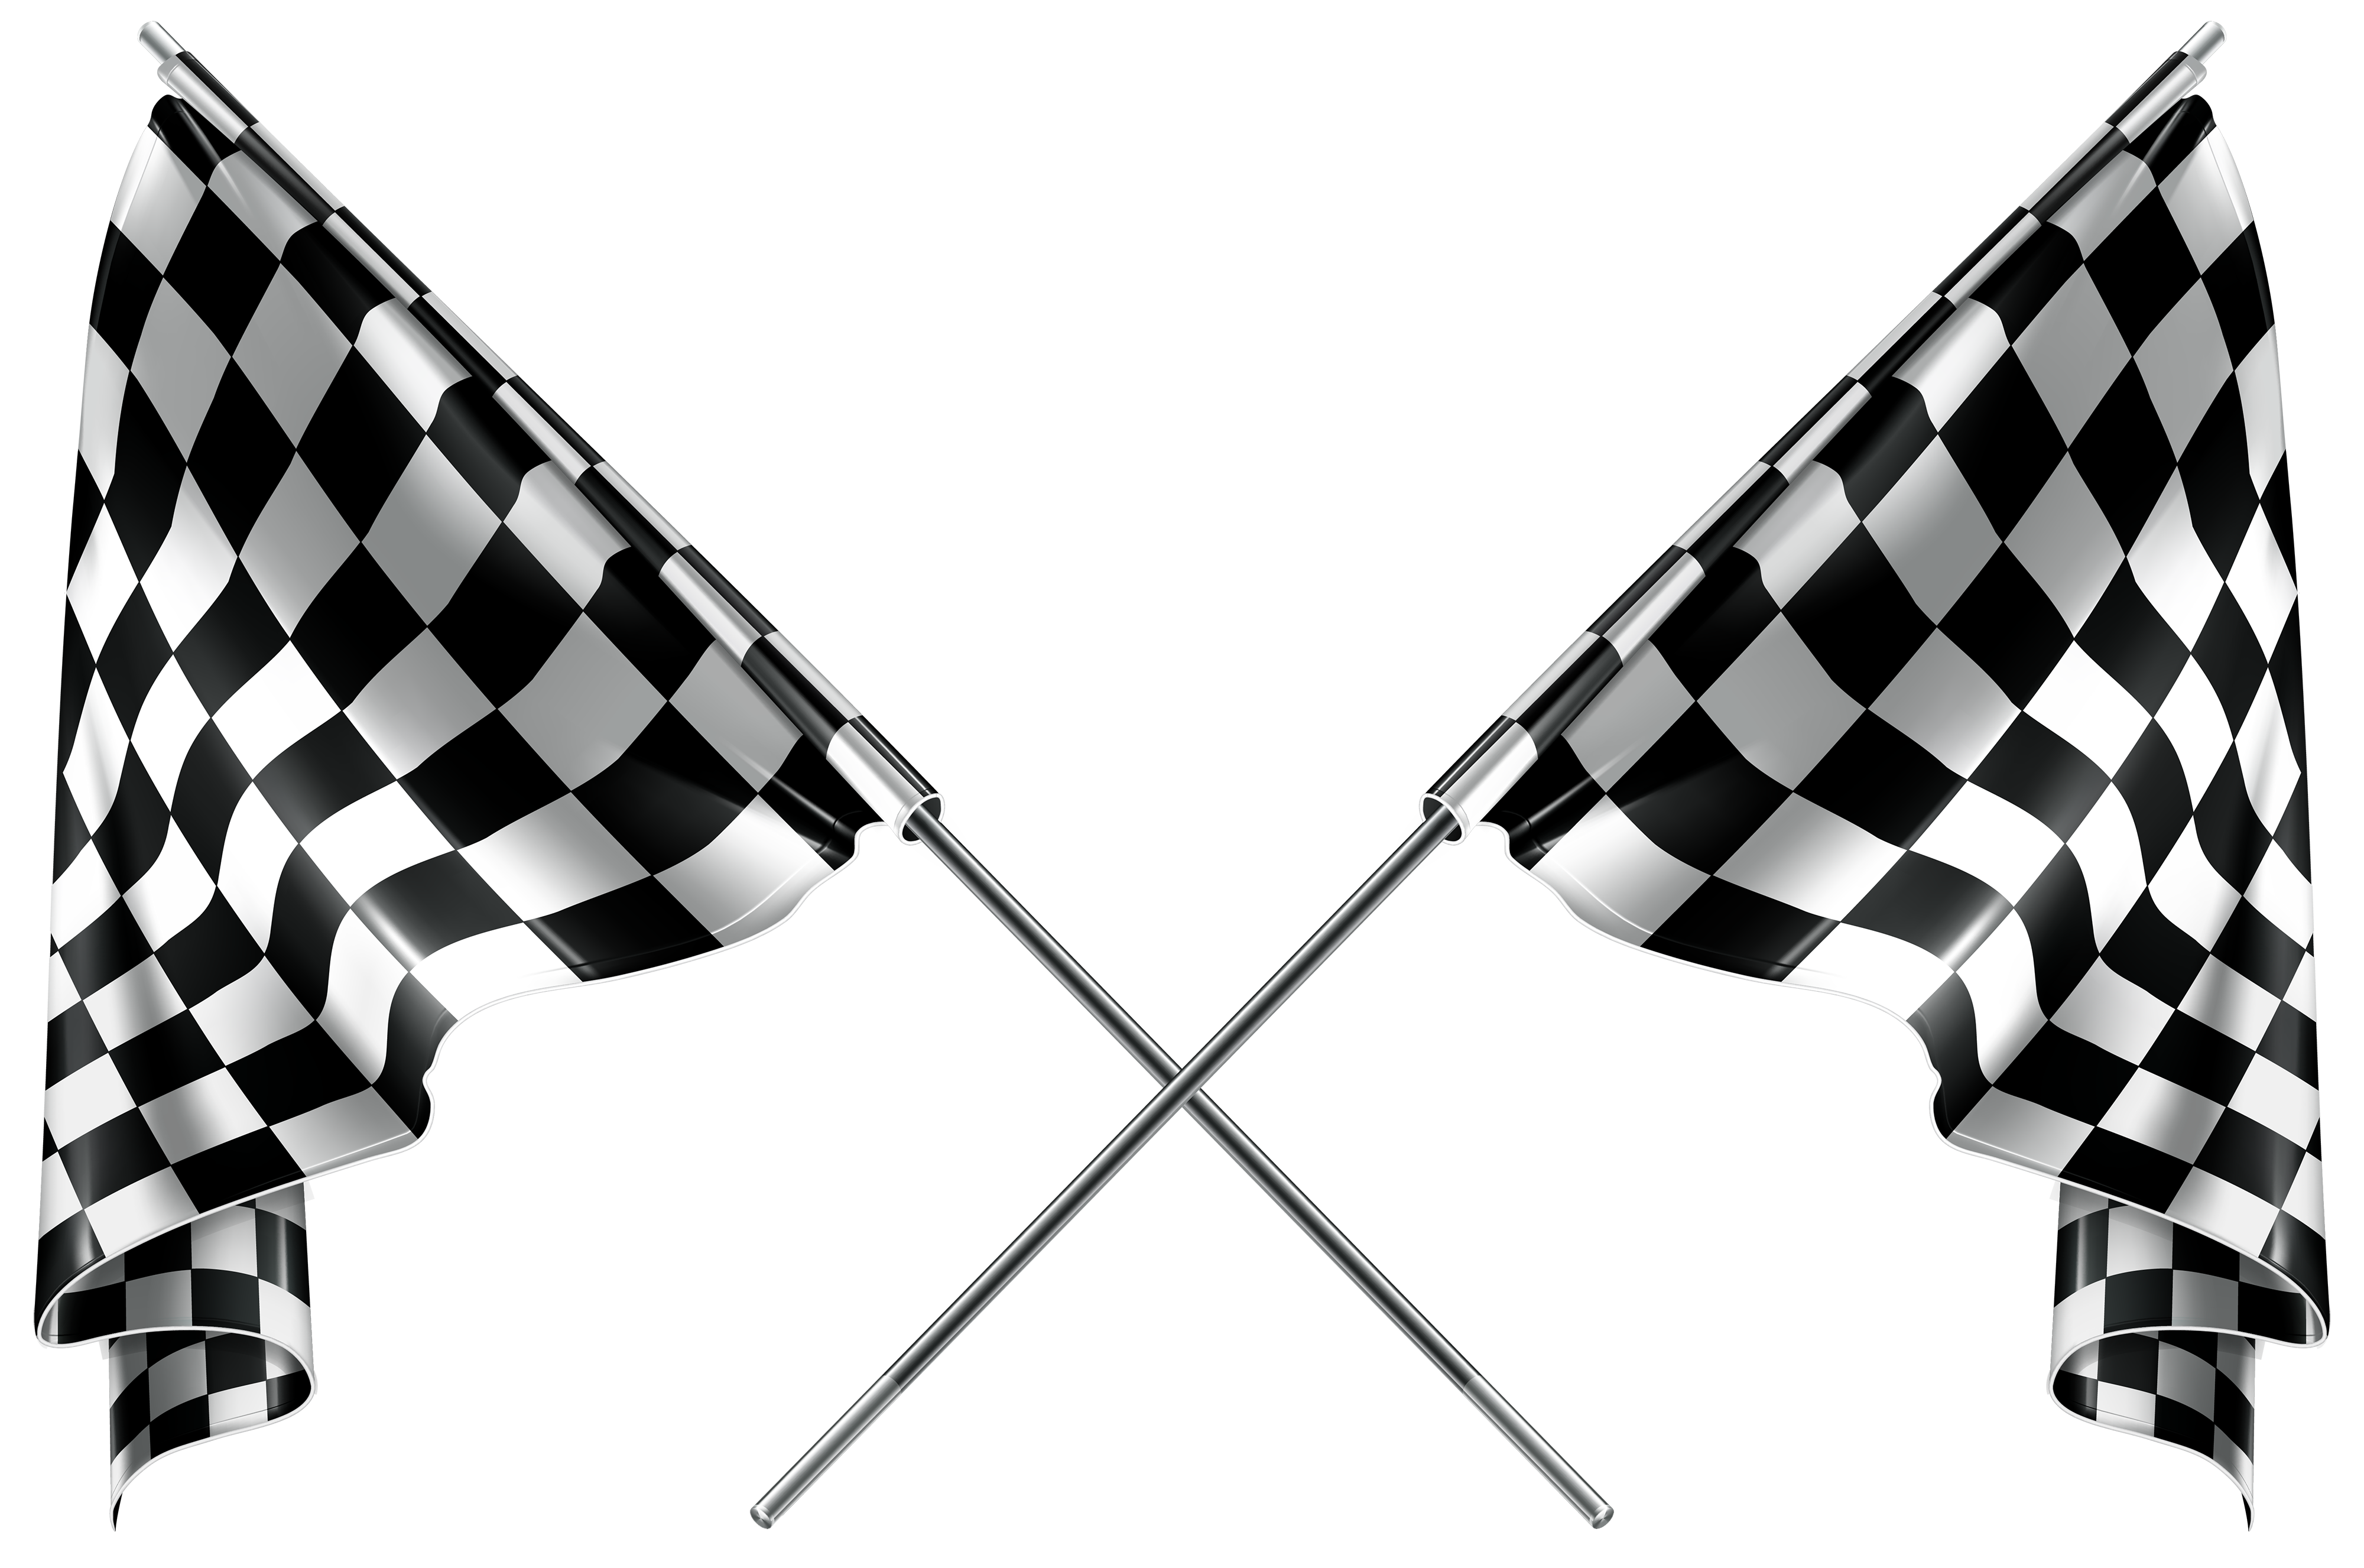 Nascar clipart file. Checkered flags png best